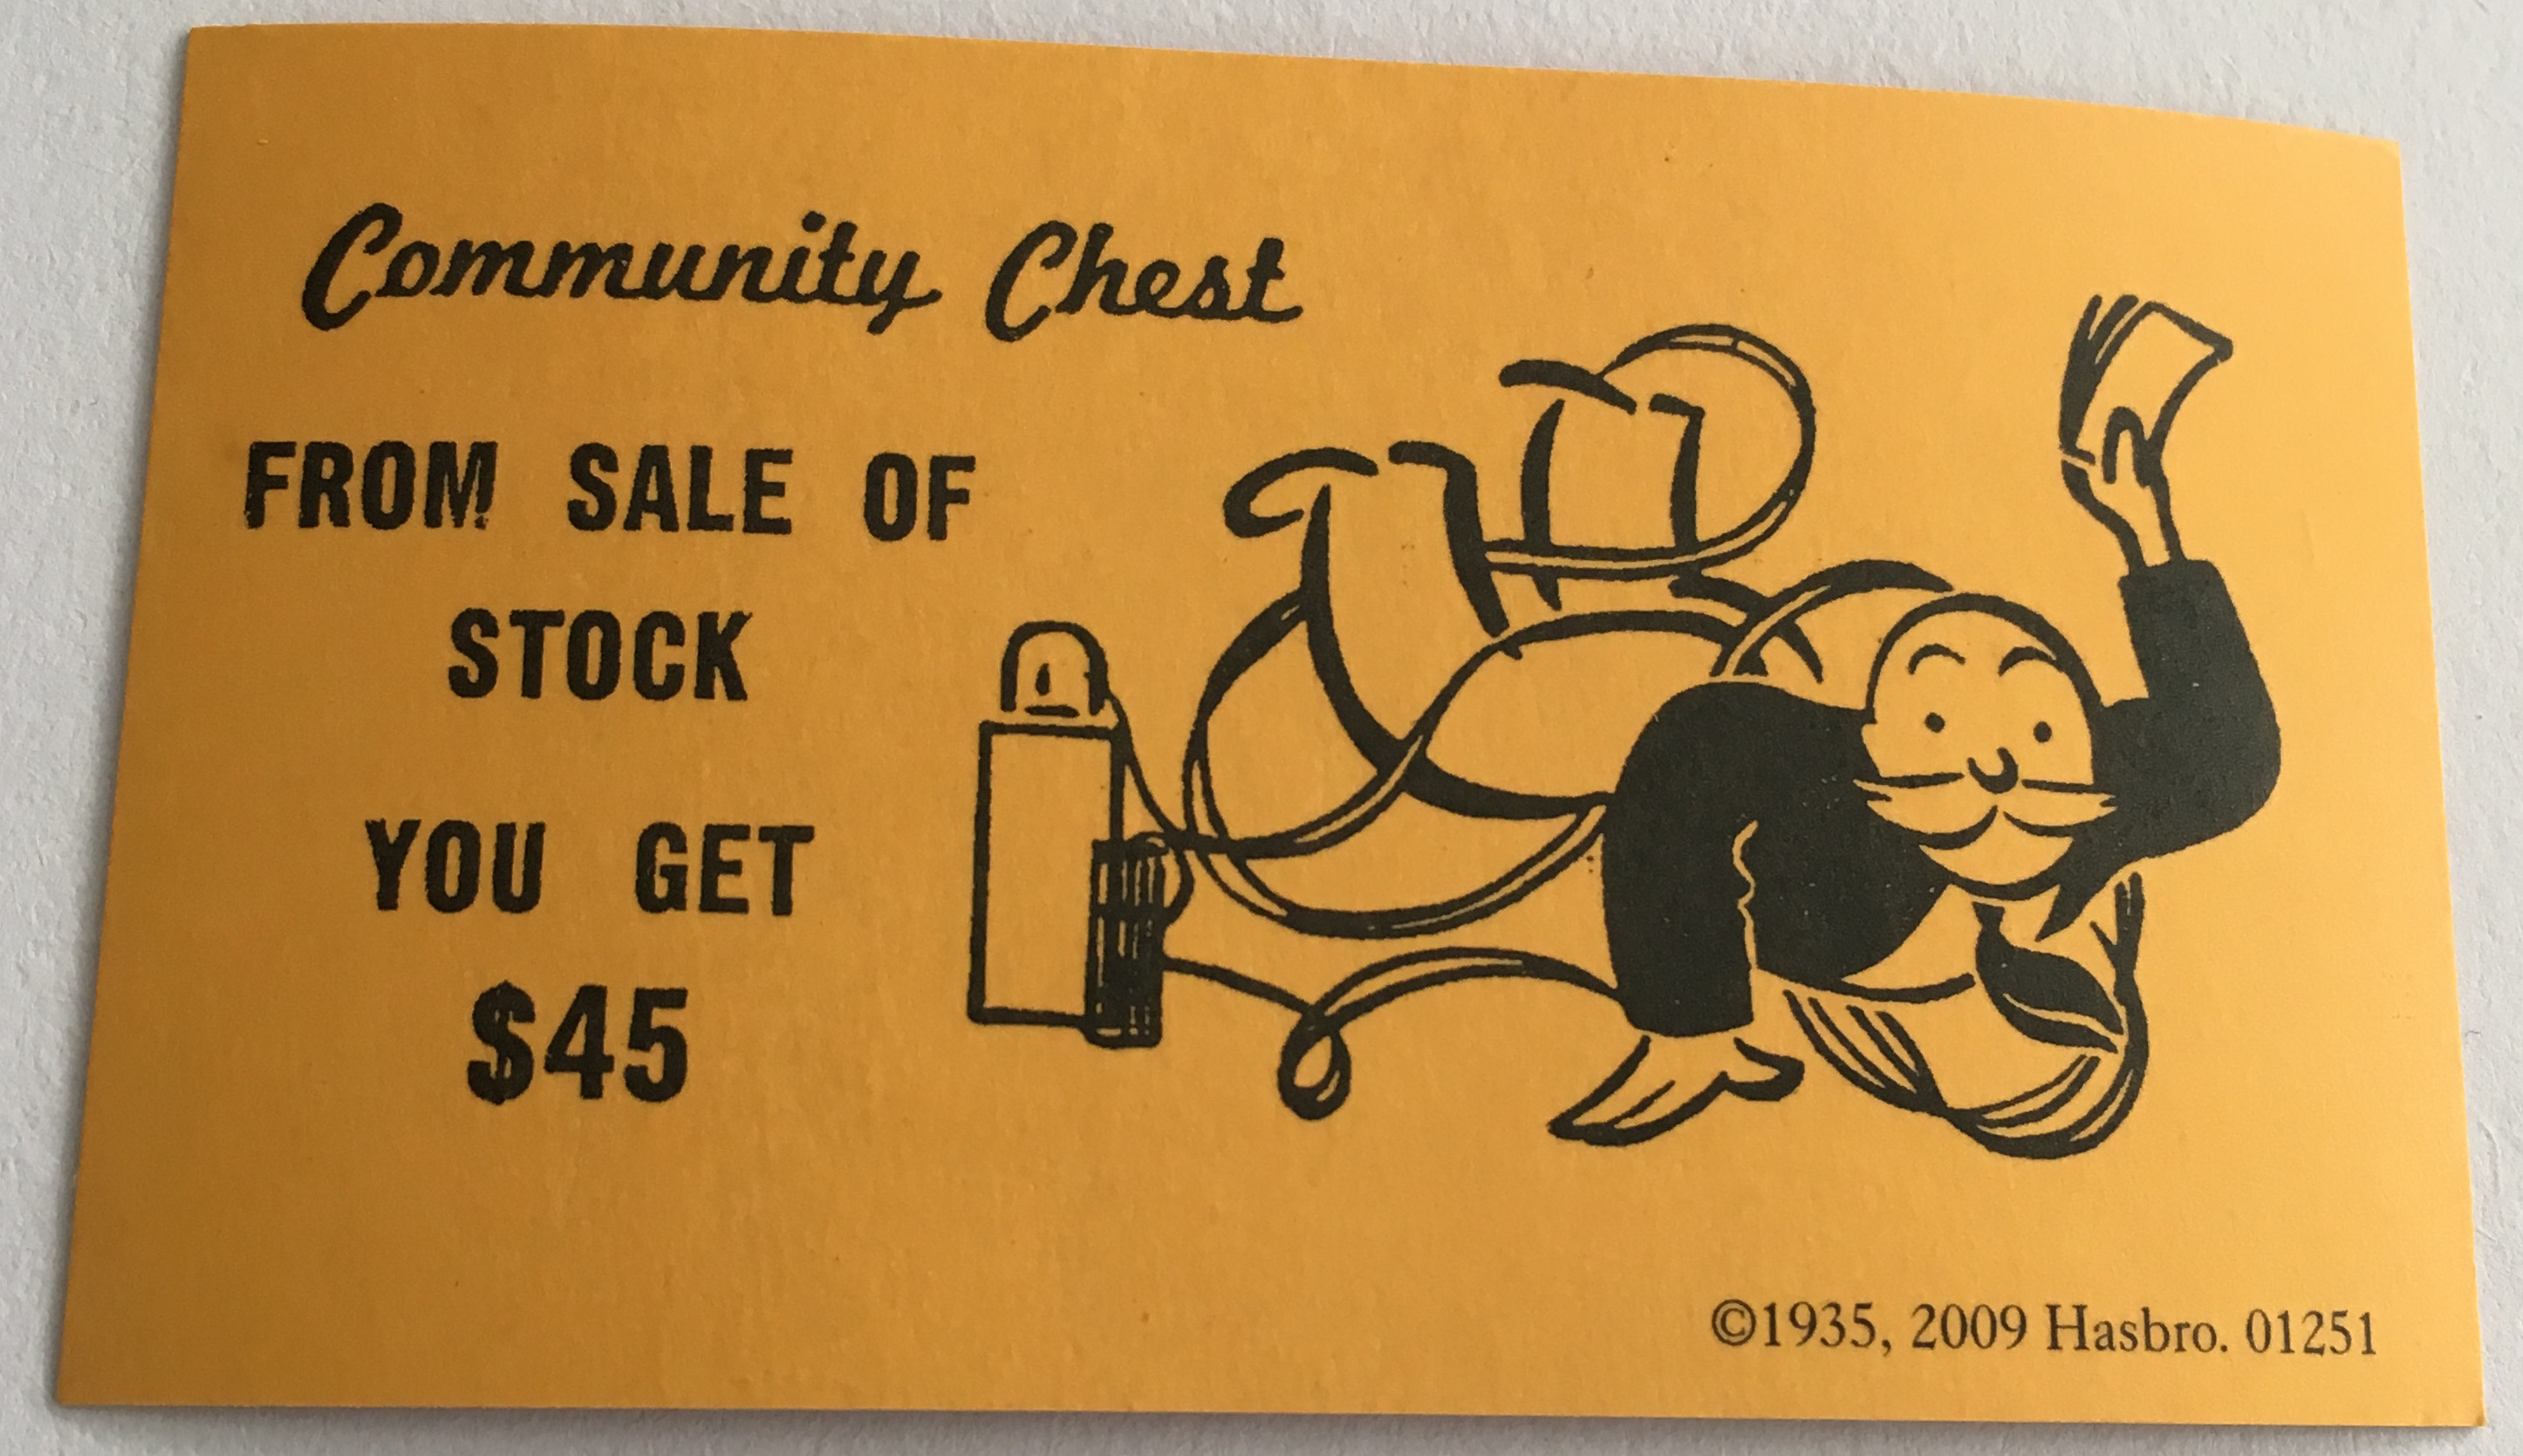 Monopoly Community Chest Card From Sale of Stock you get $45